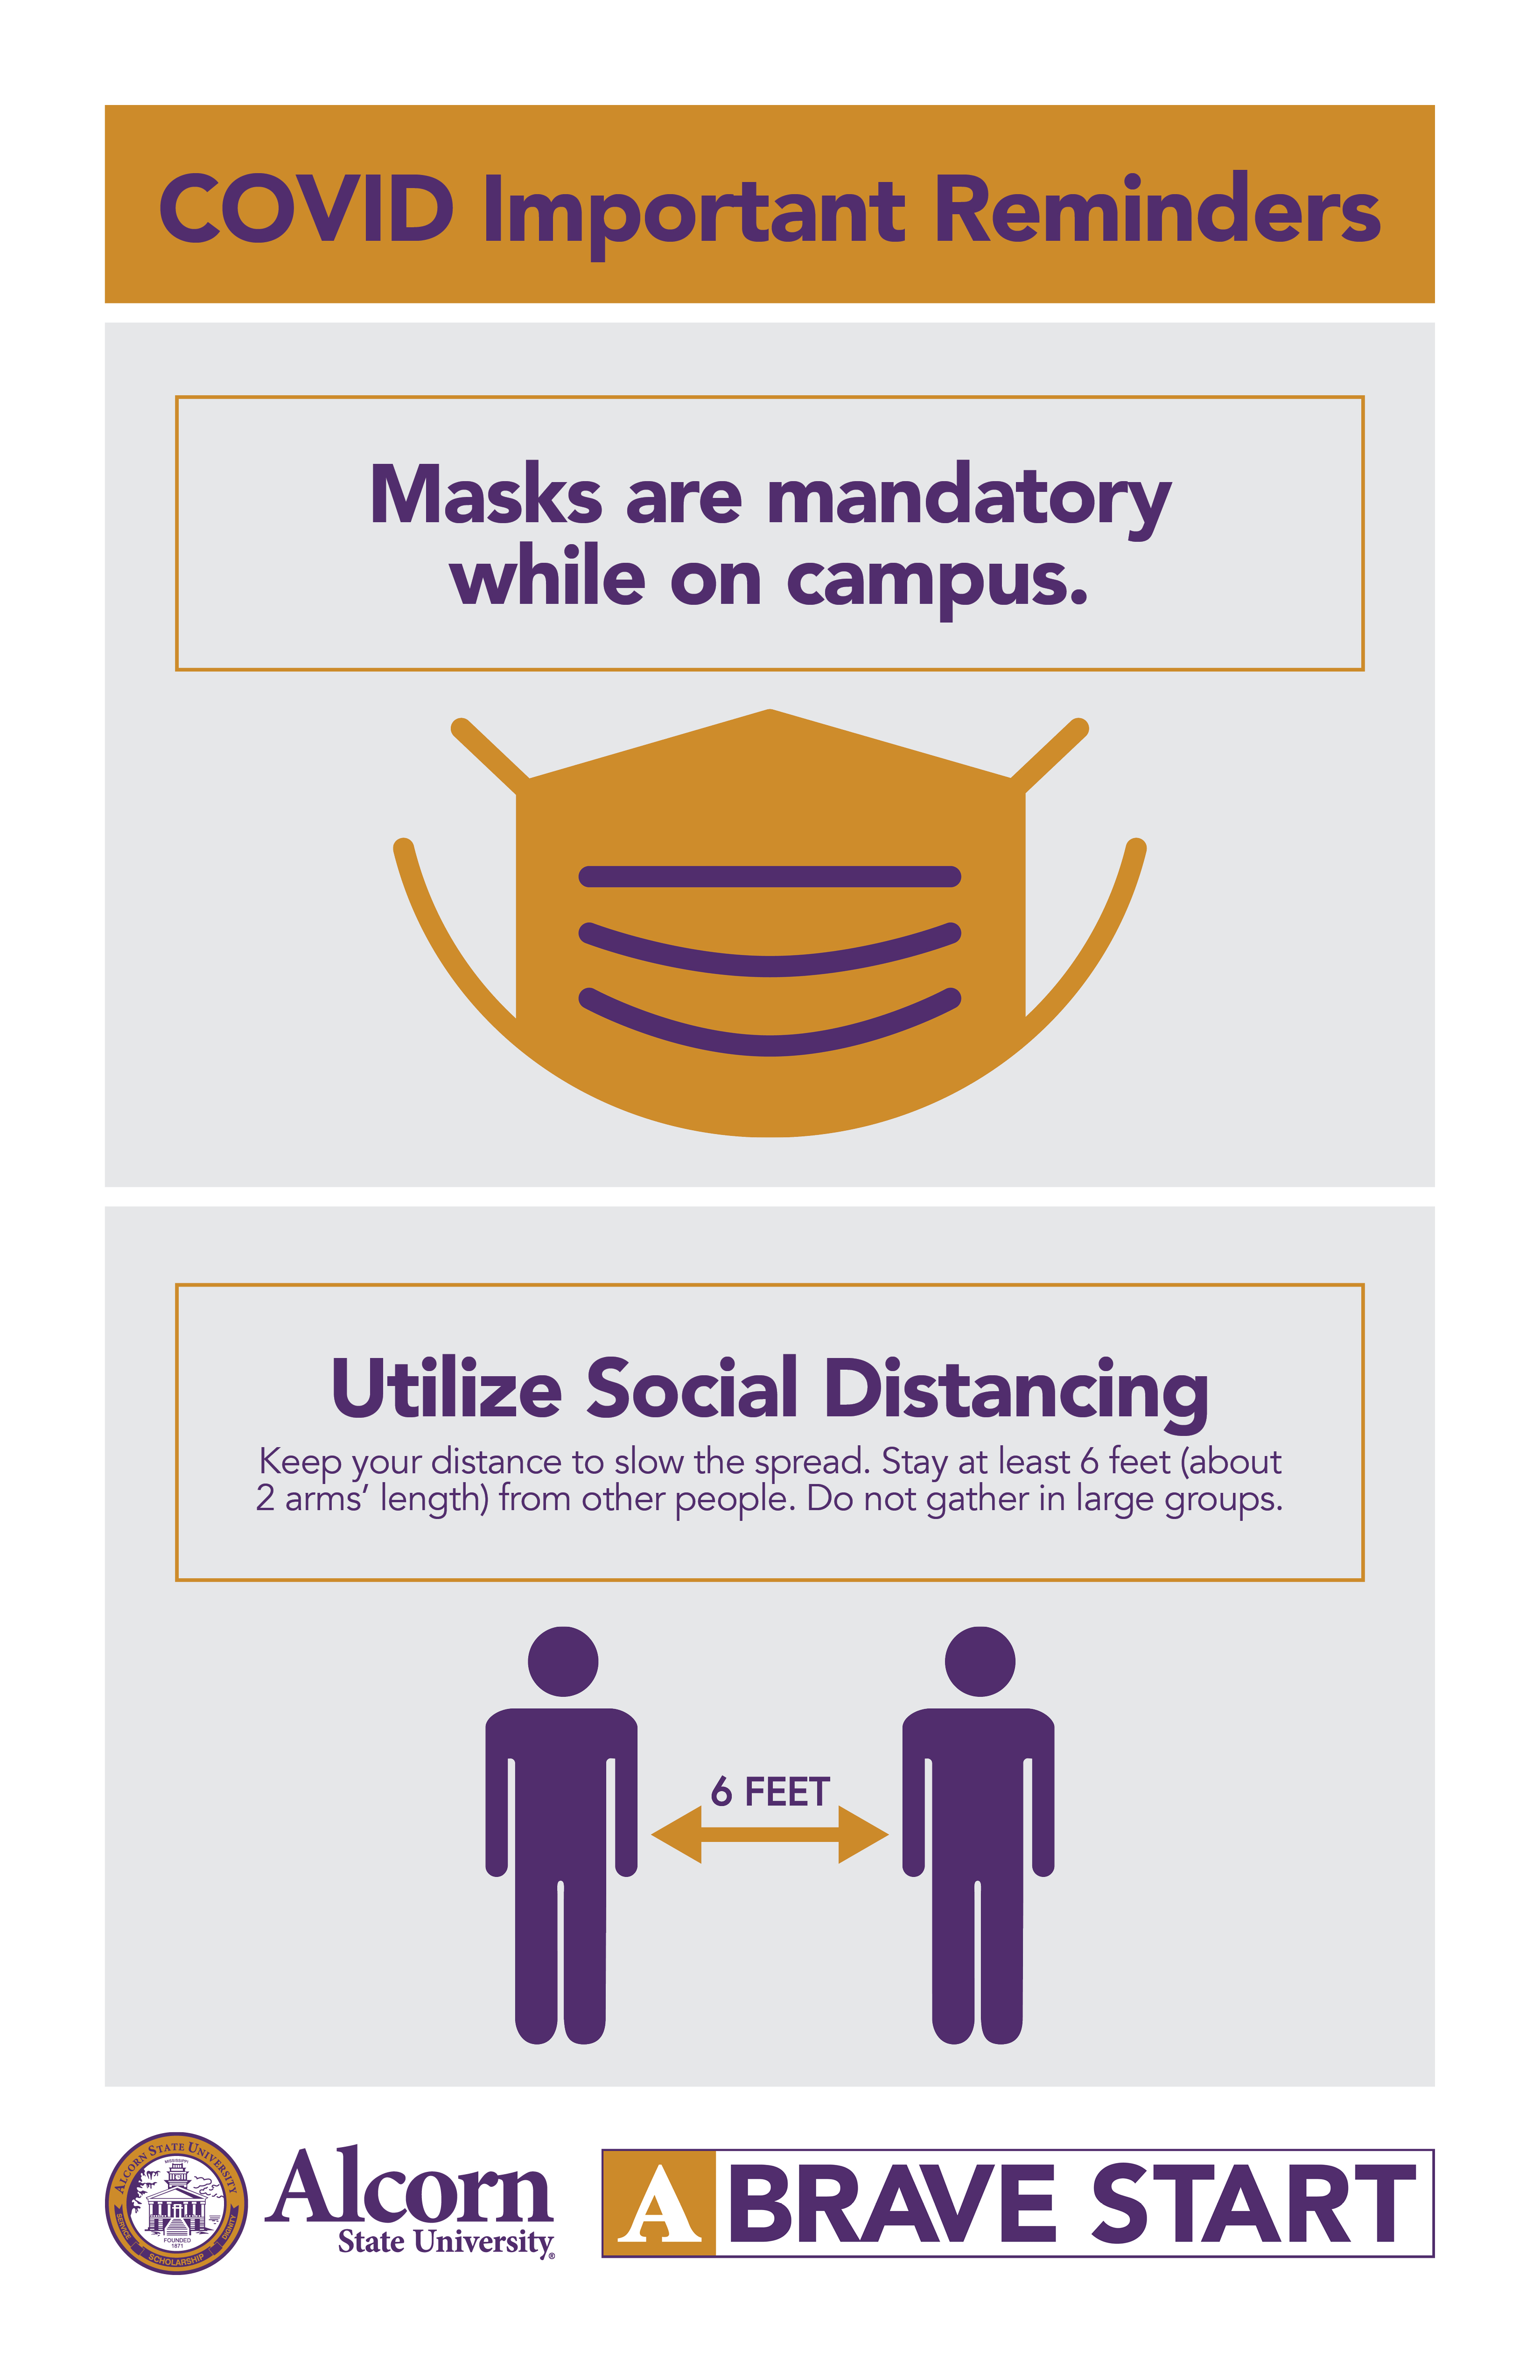 COVID Important Reminders. Masks are mandatory while on campus (Picture of a mask). Utilize Social Distancing Keep your distance to slow the spread. Stay at least 6 feet (about 2 arms' length) from other people. Do not gather in large groups (Picture of two people standing six feet apart). (Alcorn logo mark. A Brave Start logo mark.)